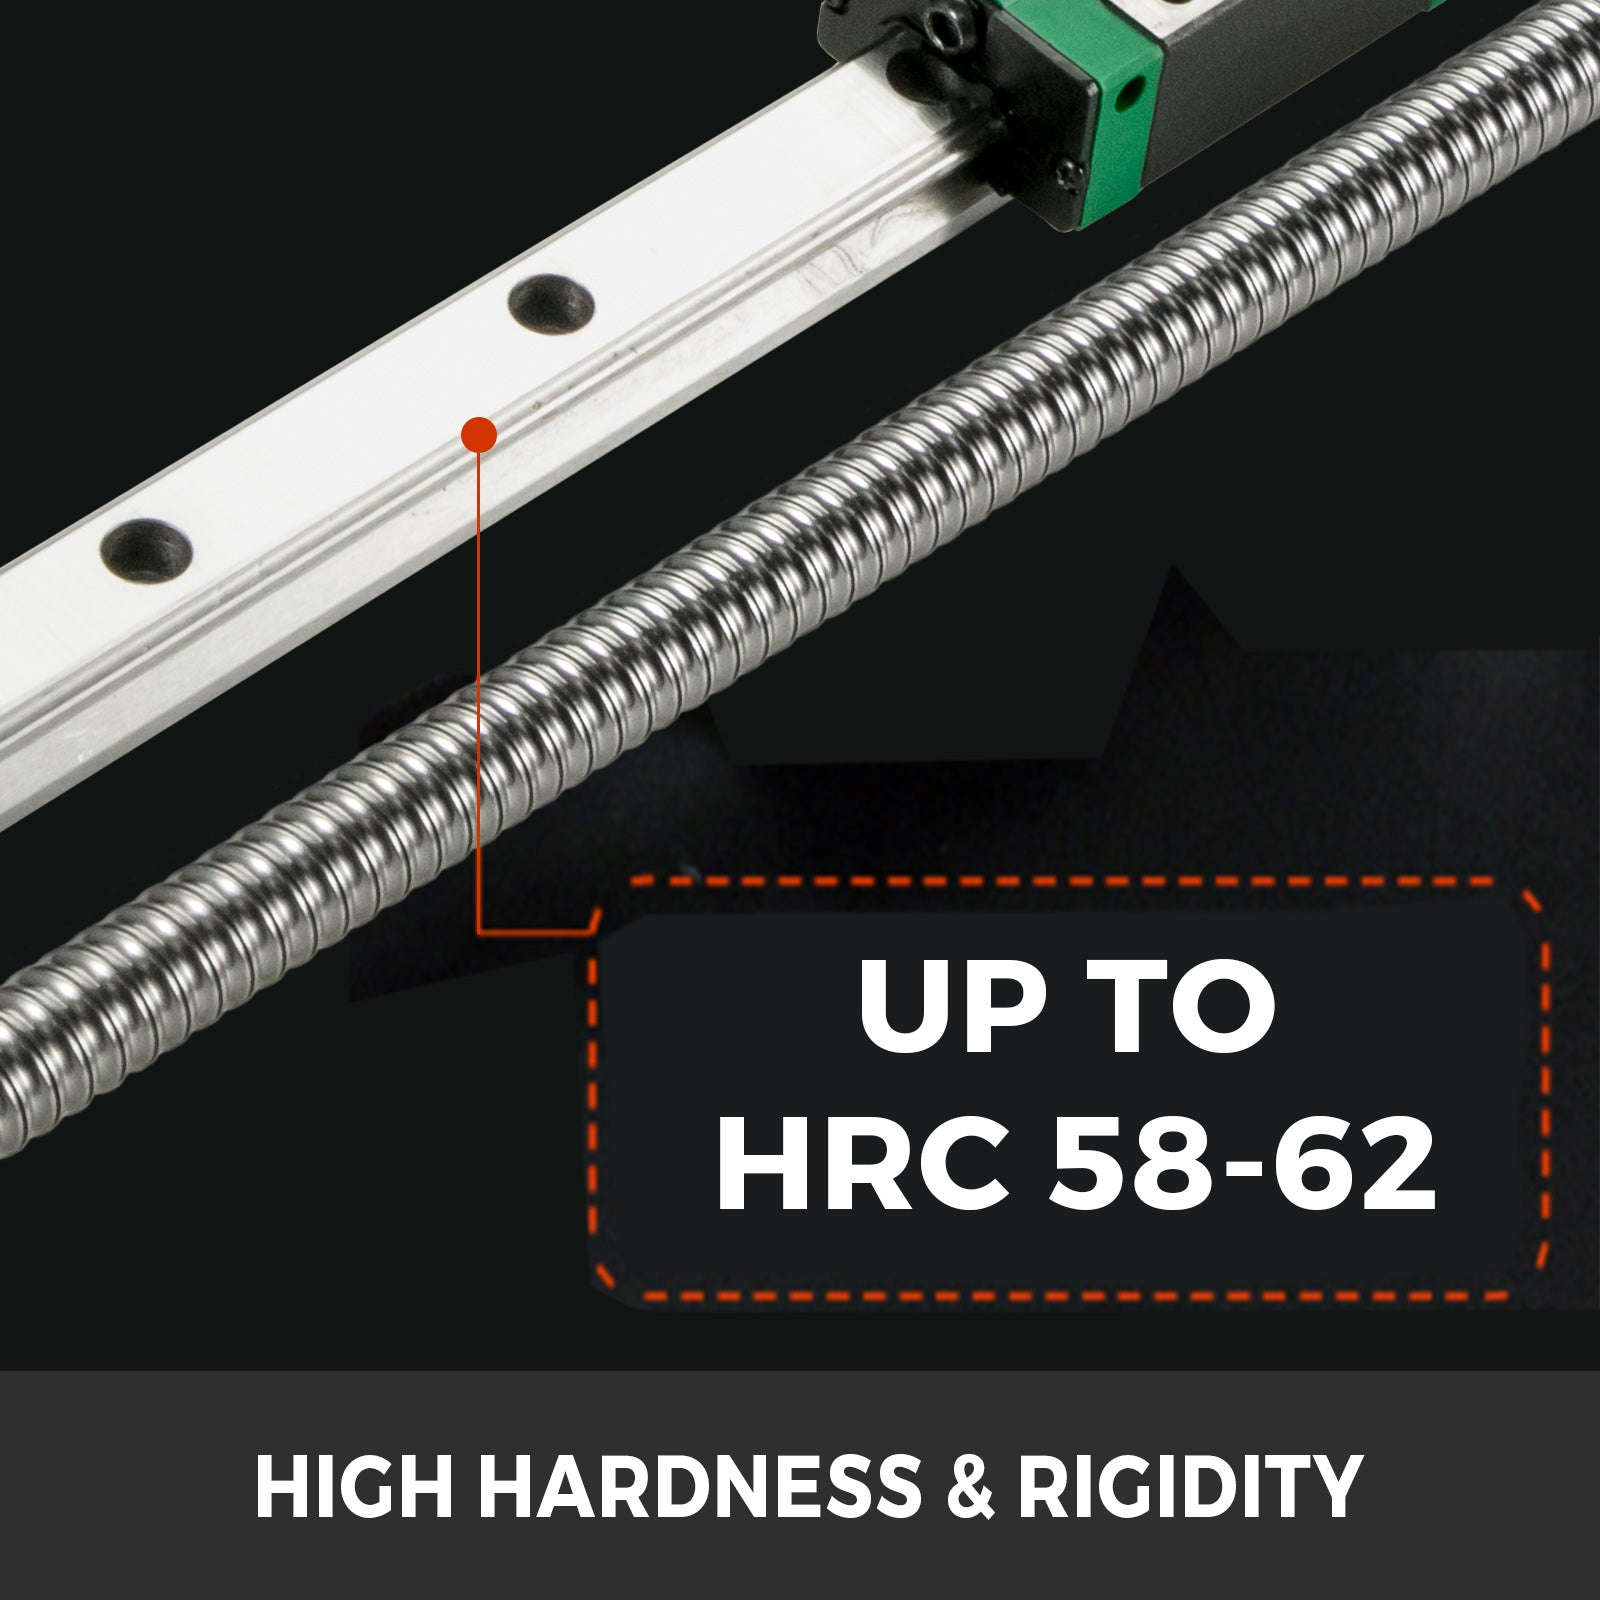 Cnc Set 2x Linear Rails Hgr20-200mm 4 Blocks Ballscrew Rm1605 Bf/bk12 Hardness